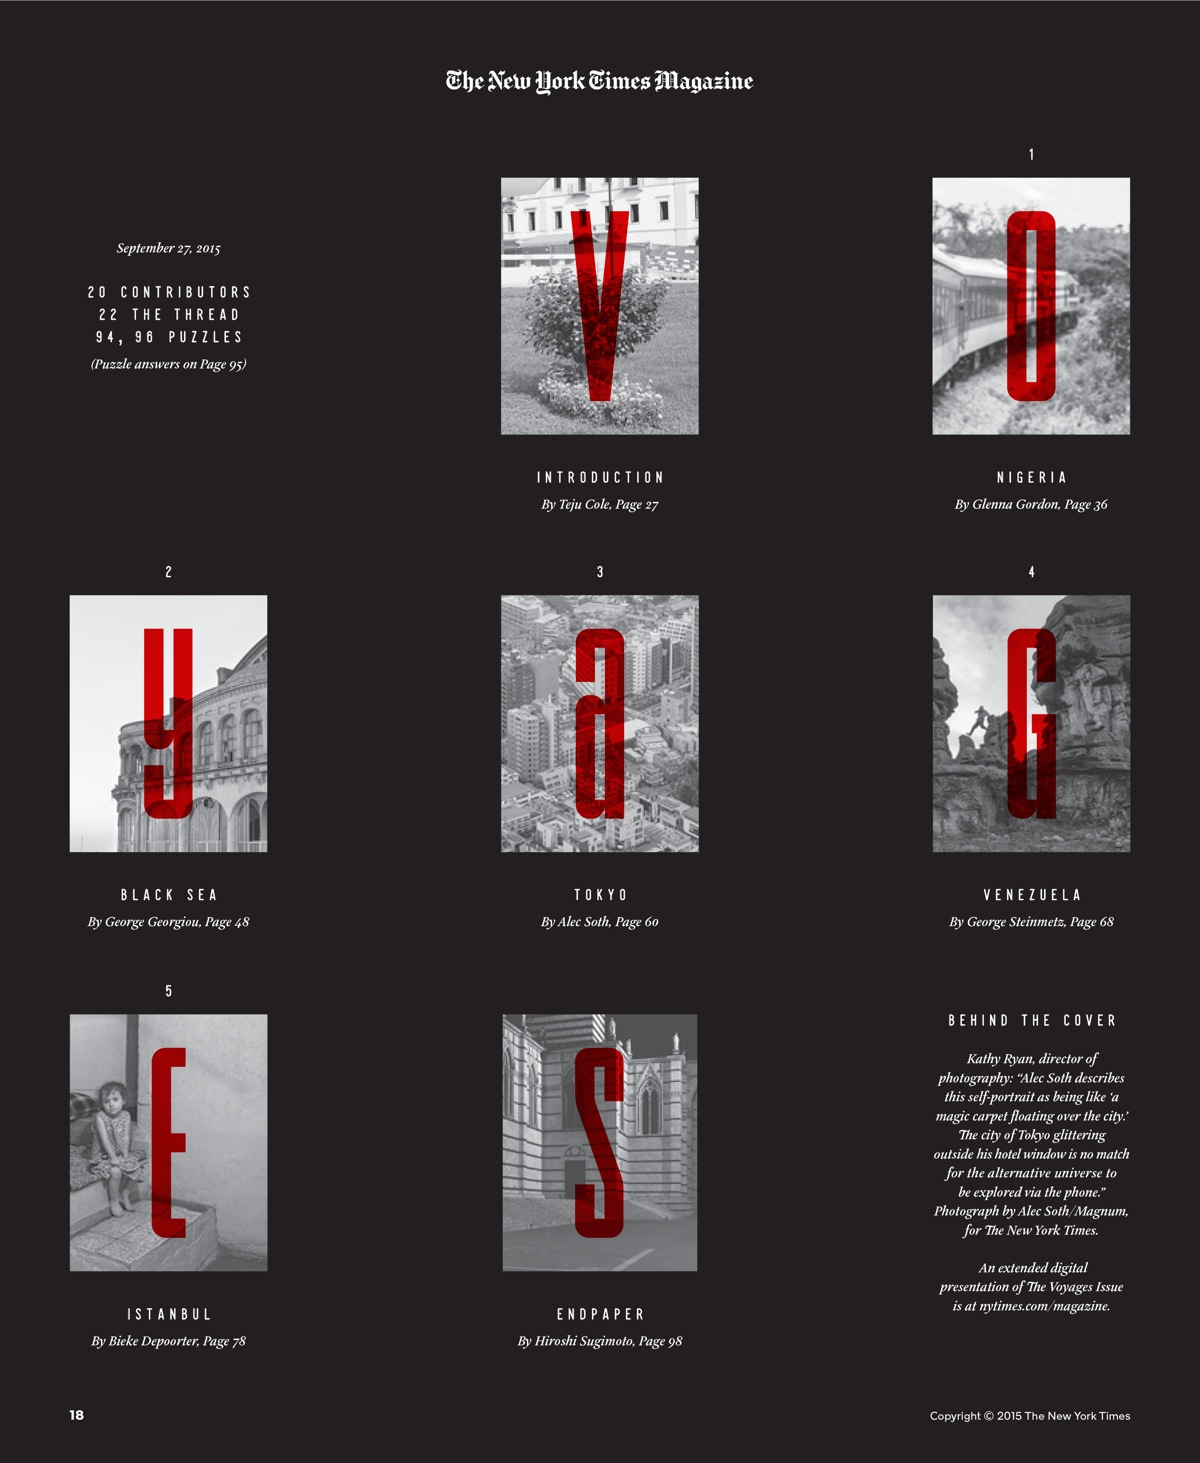 Voyages opening page, using condensed type by art director Matt Willey